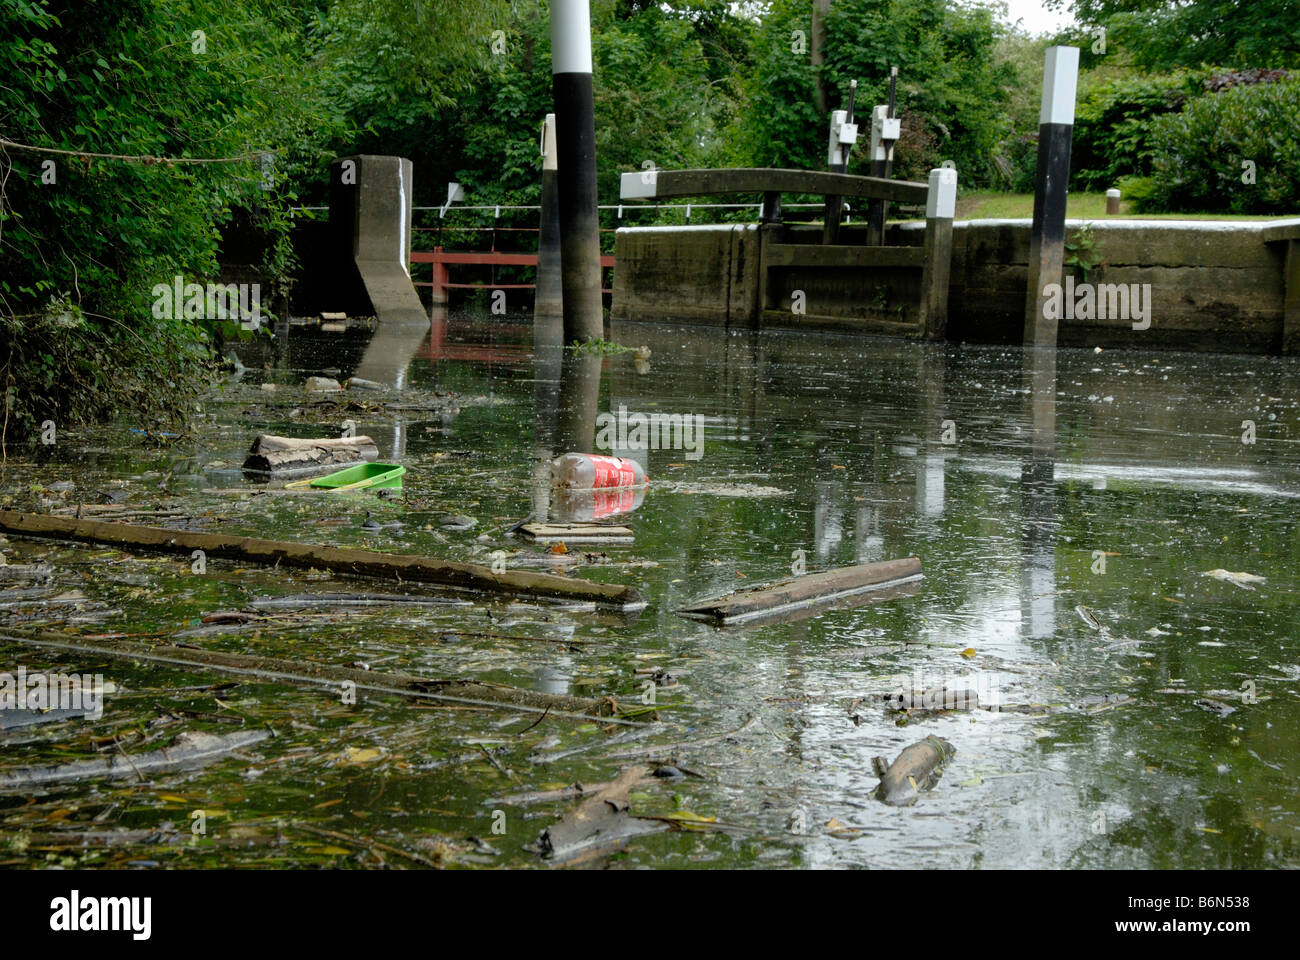 River pollution: plastic bottles, tubs, wooden logs and deadfall floating on surface of River Wey with lock gates - Stock Image